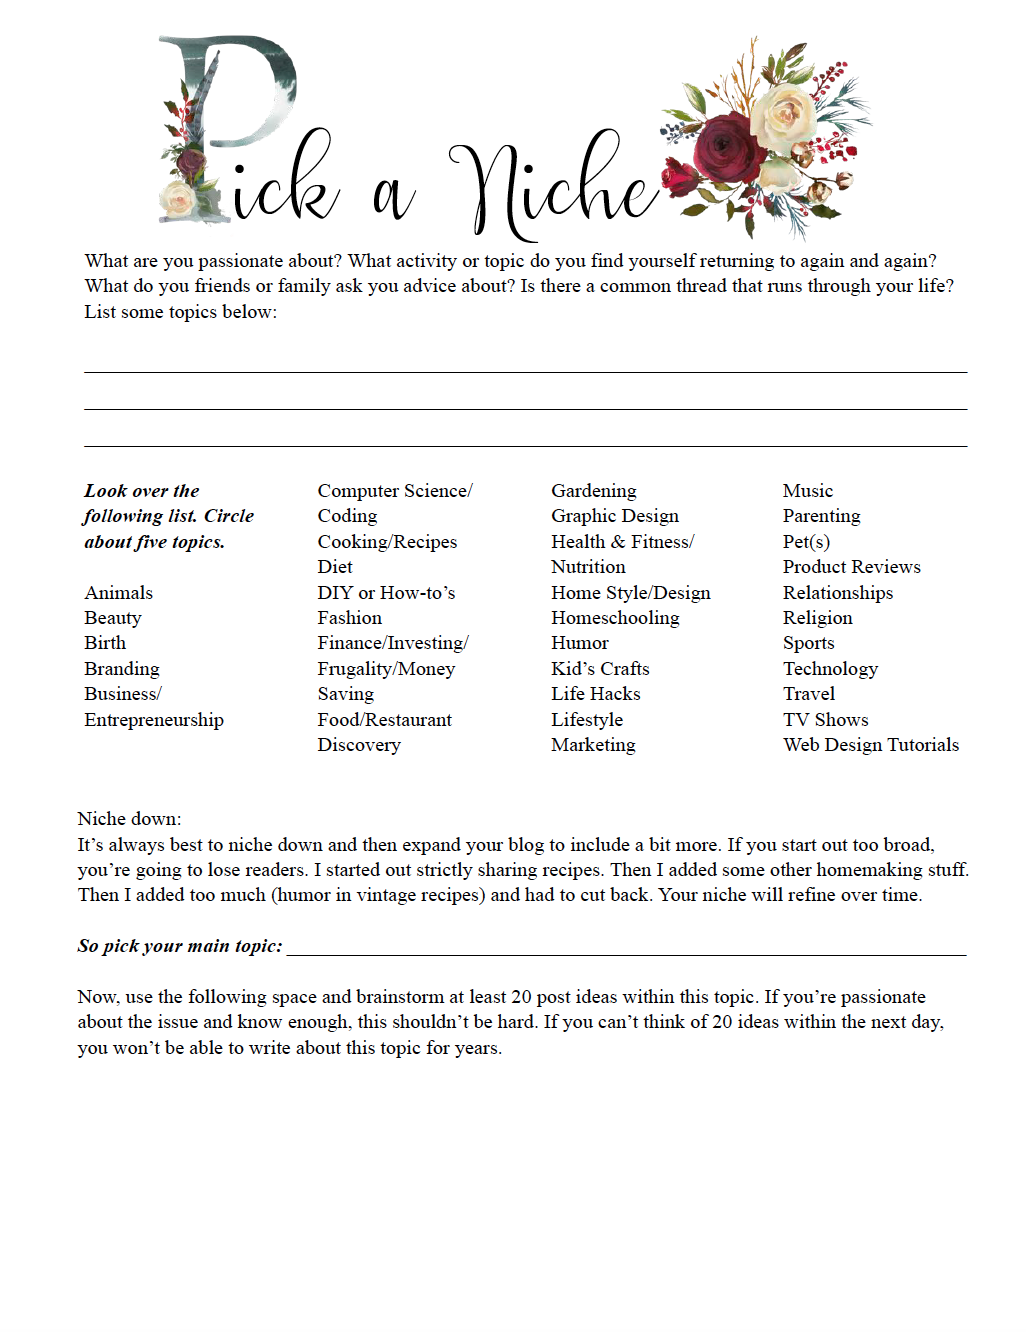 Free printable 'pick a niche' worksheet, part of how to build a blog post.